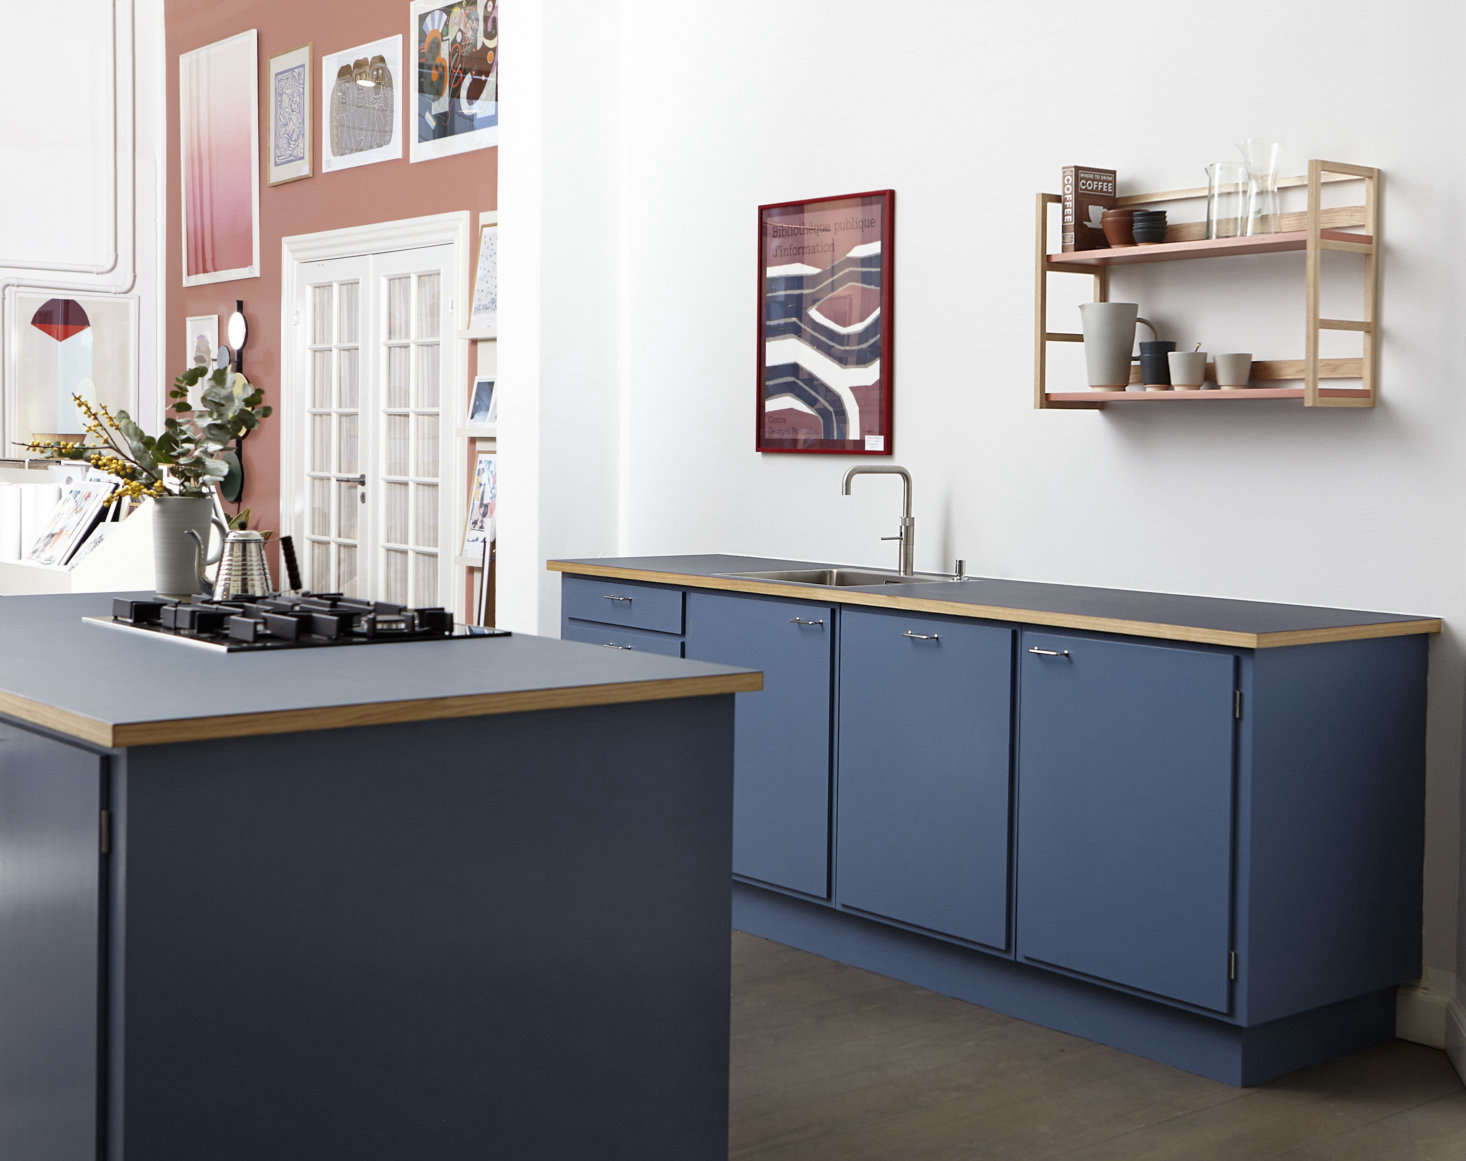 Kitchen of the Week: The Updatable Kitchen from Stilleben Kitchen in Copenhagen